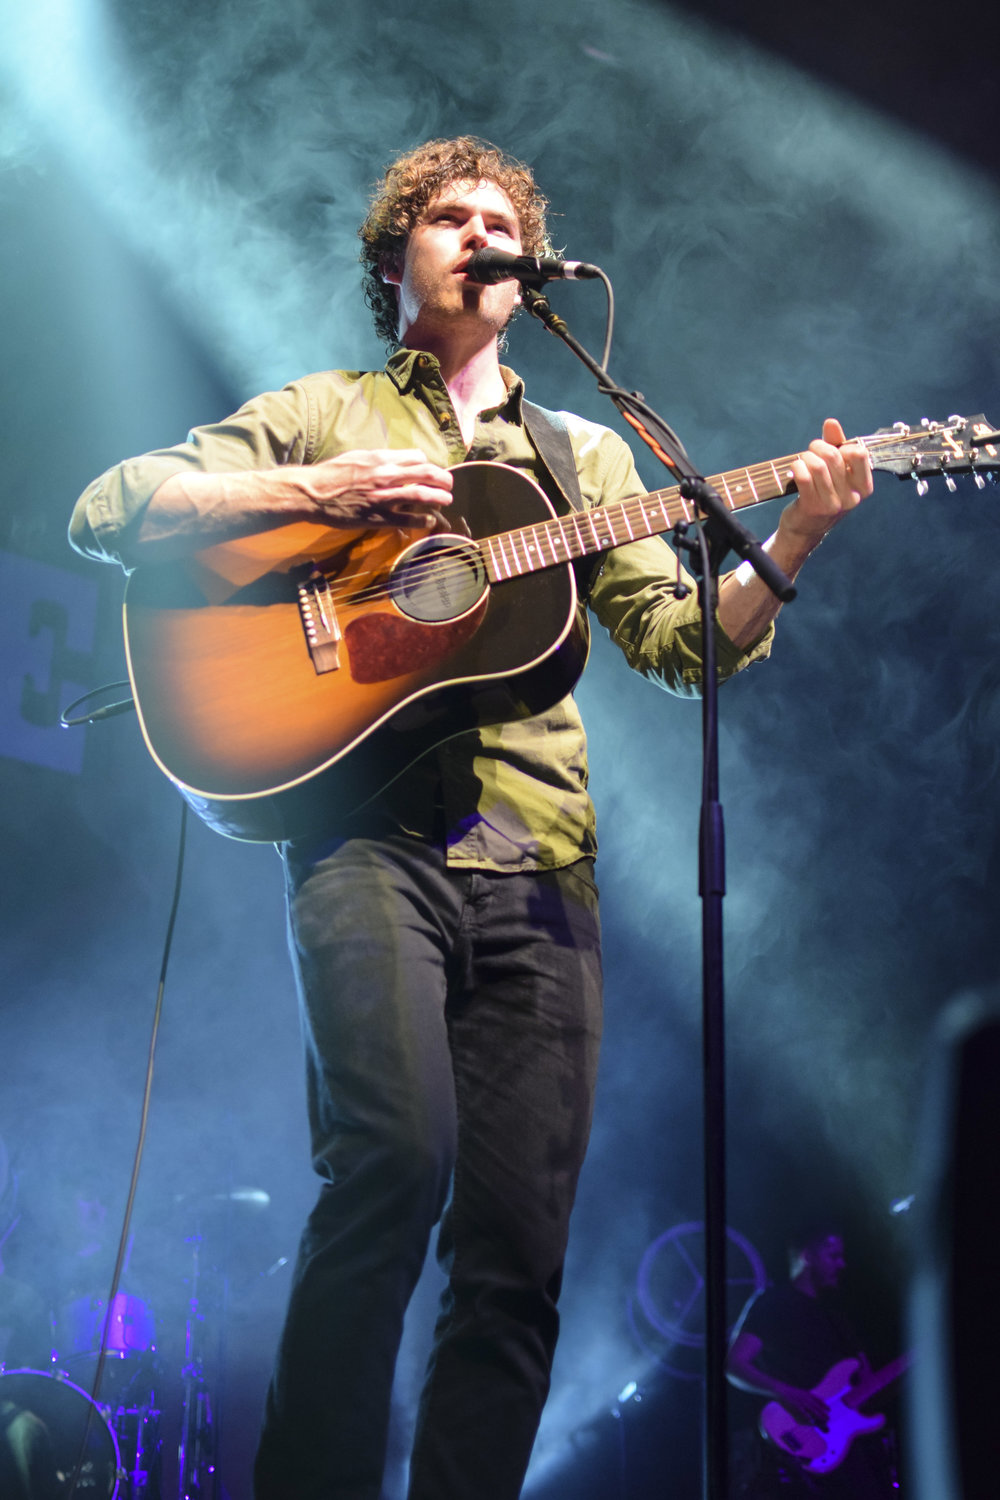 VanceJoy_Feb2016DSC_0184_Edited_Small.jpg